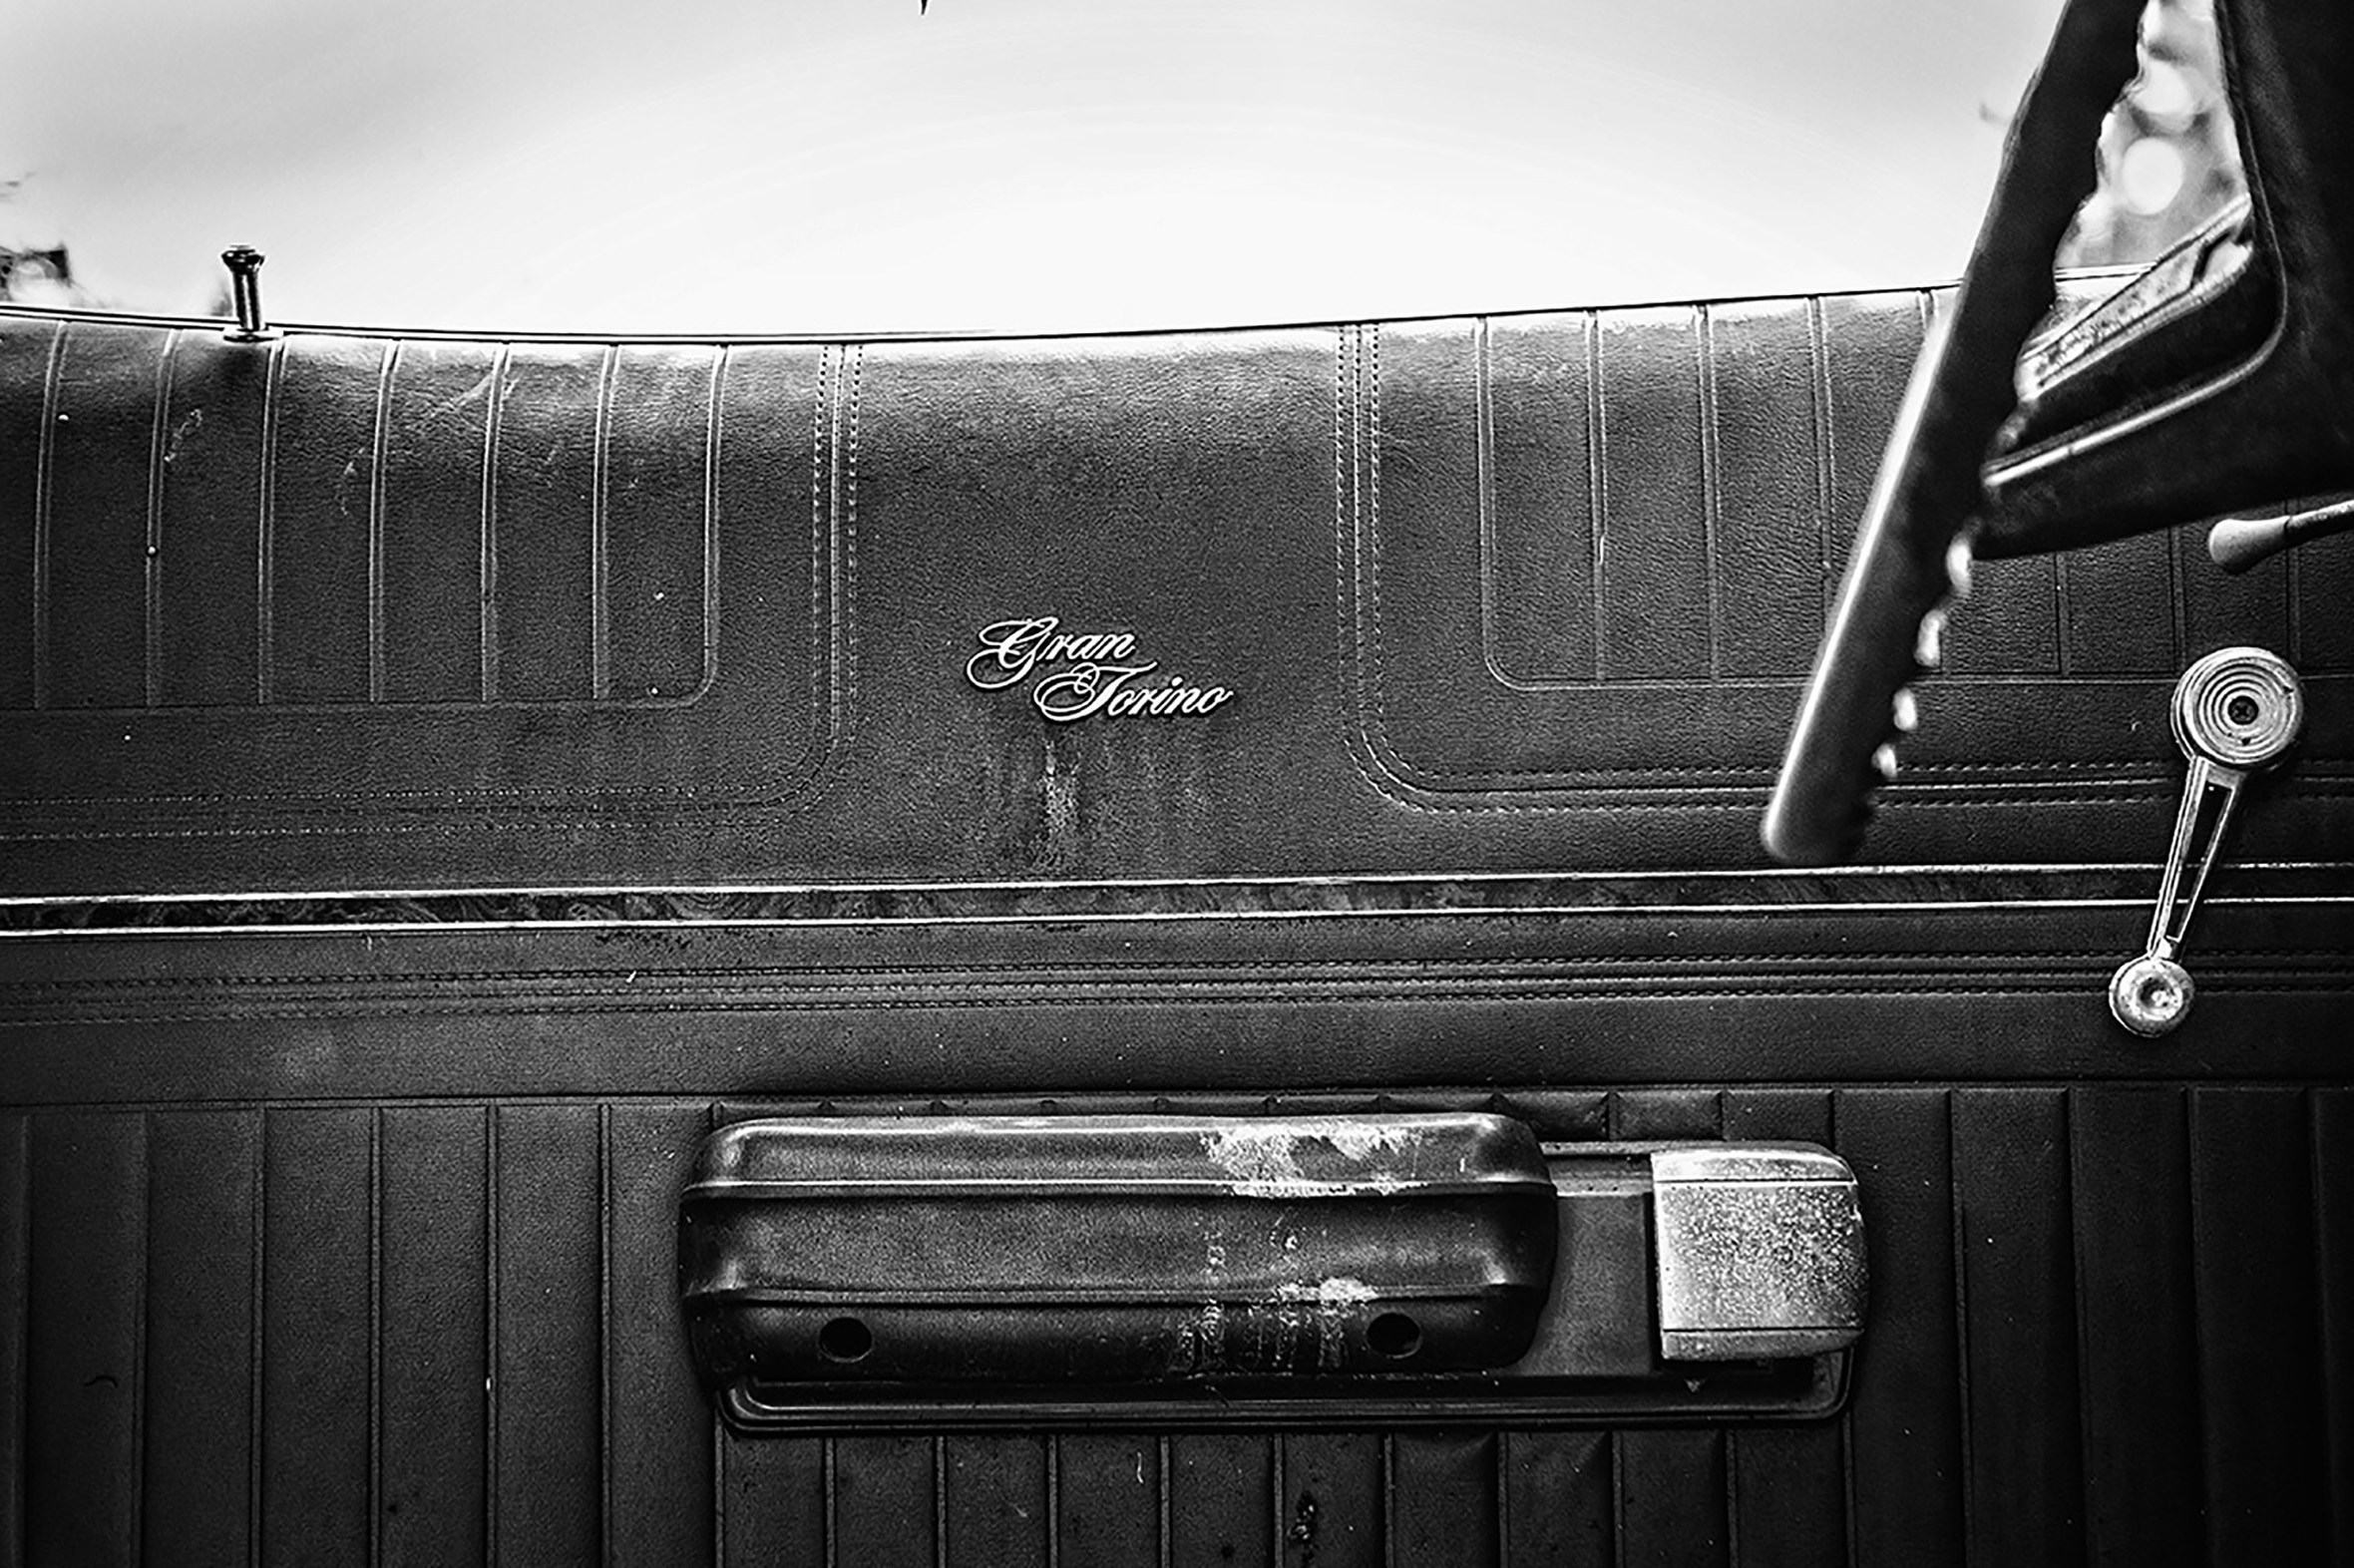 A close-up of the inside door of a Gran Torino. The steering wheel is just visible. The latch of the door is slightly worn.